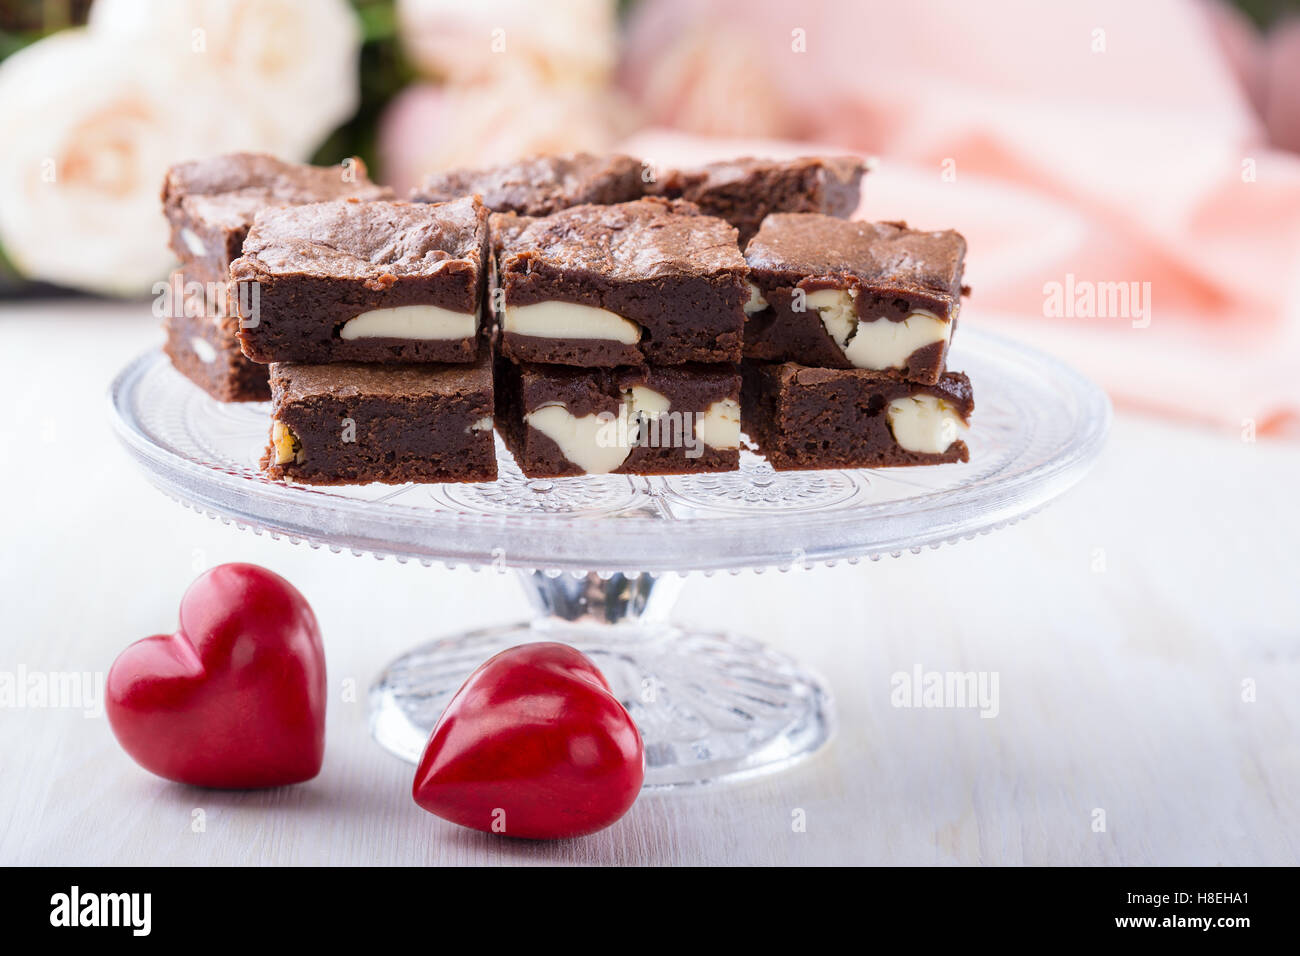 Valentines day cheesecake brownies on cake stand on pink roses background - Stock Image